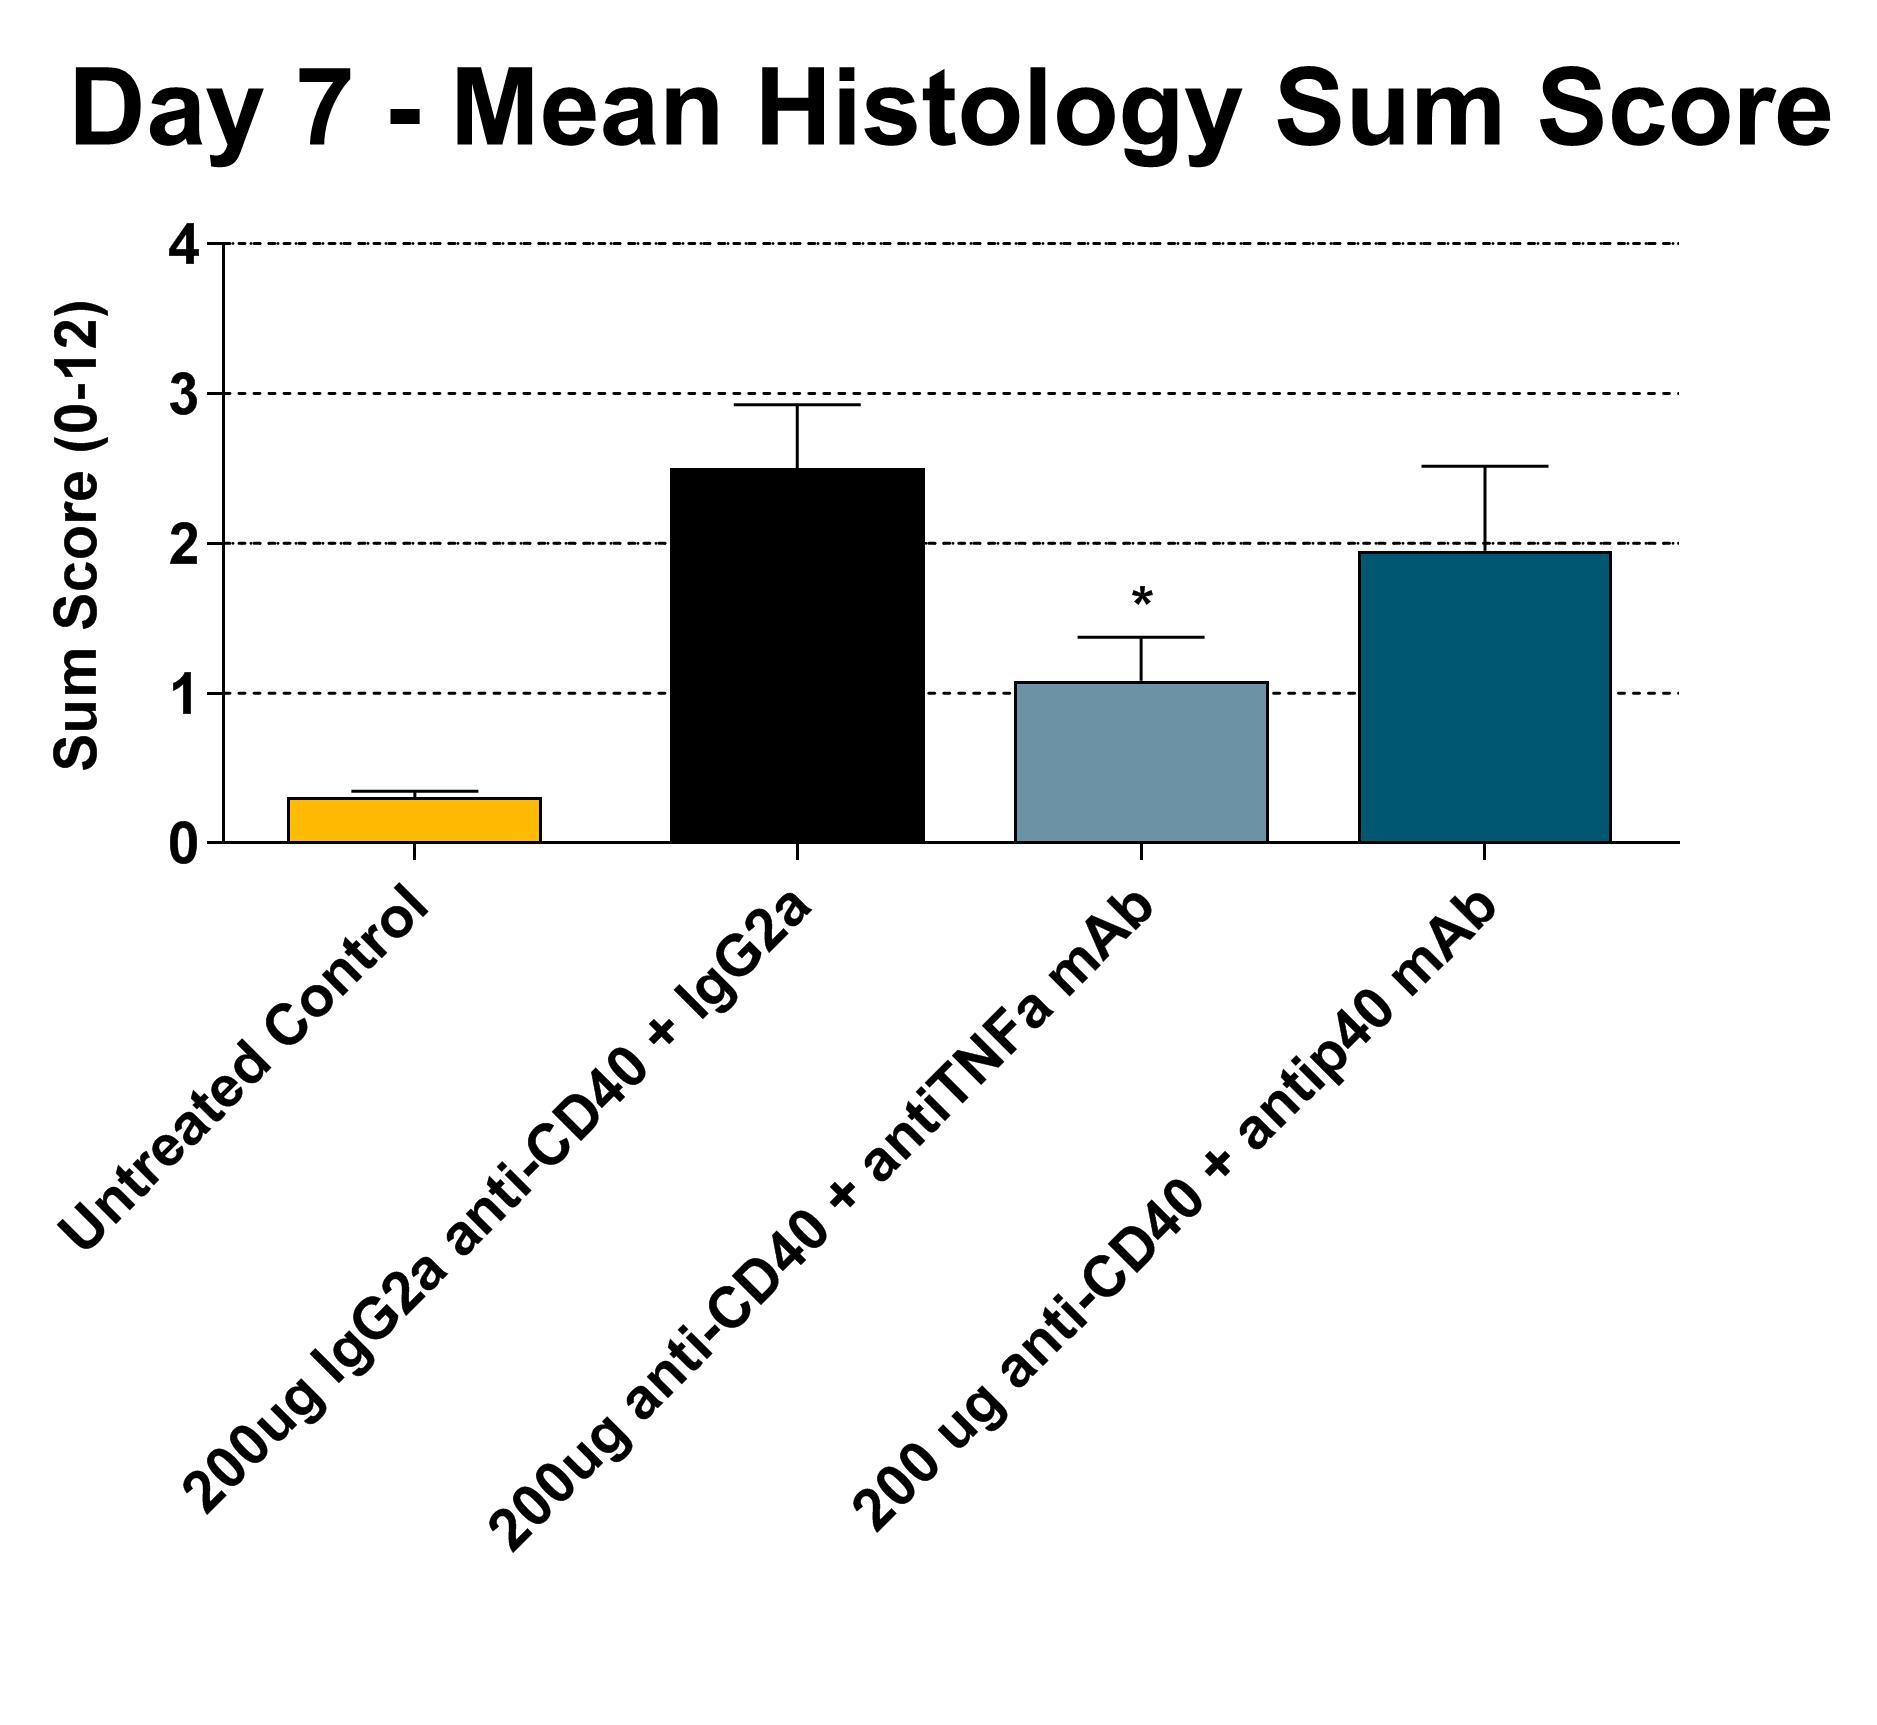 Day 7 Mean Histology Sum Score